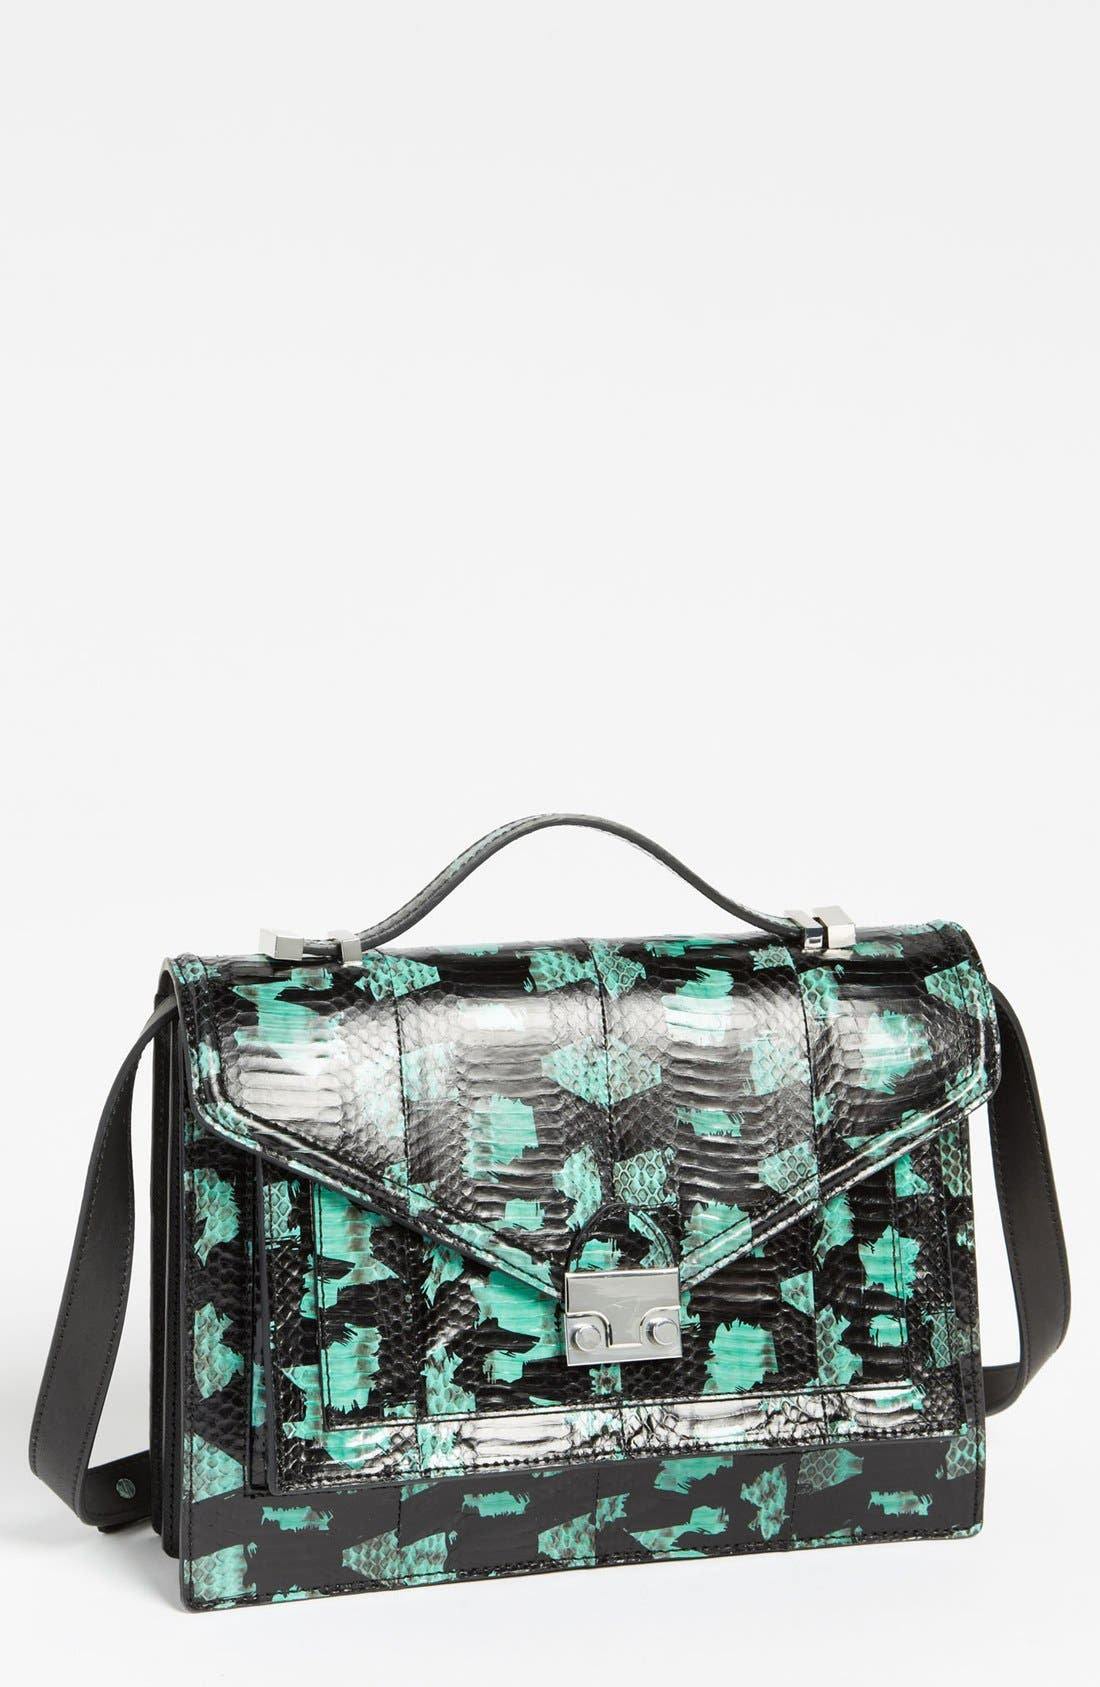 Alternate Image 1 Selected - Loeffler Randall 'Rider' Genuine Snakeskin Satchel